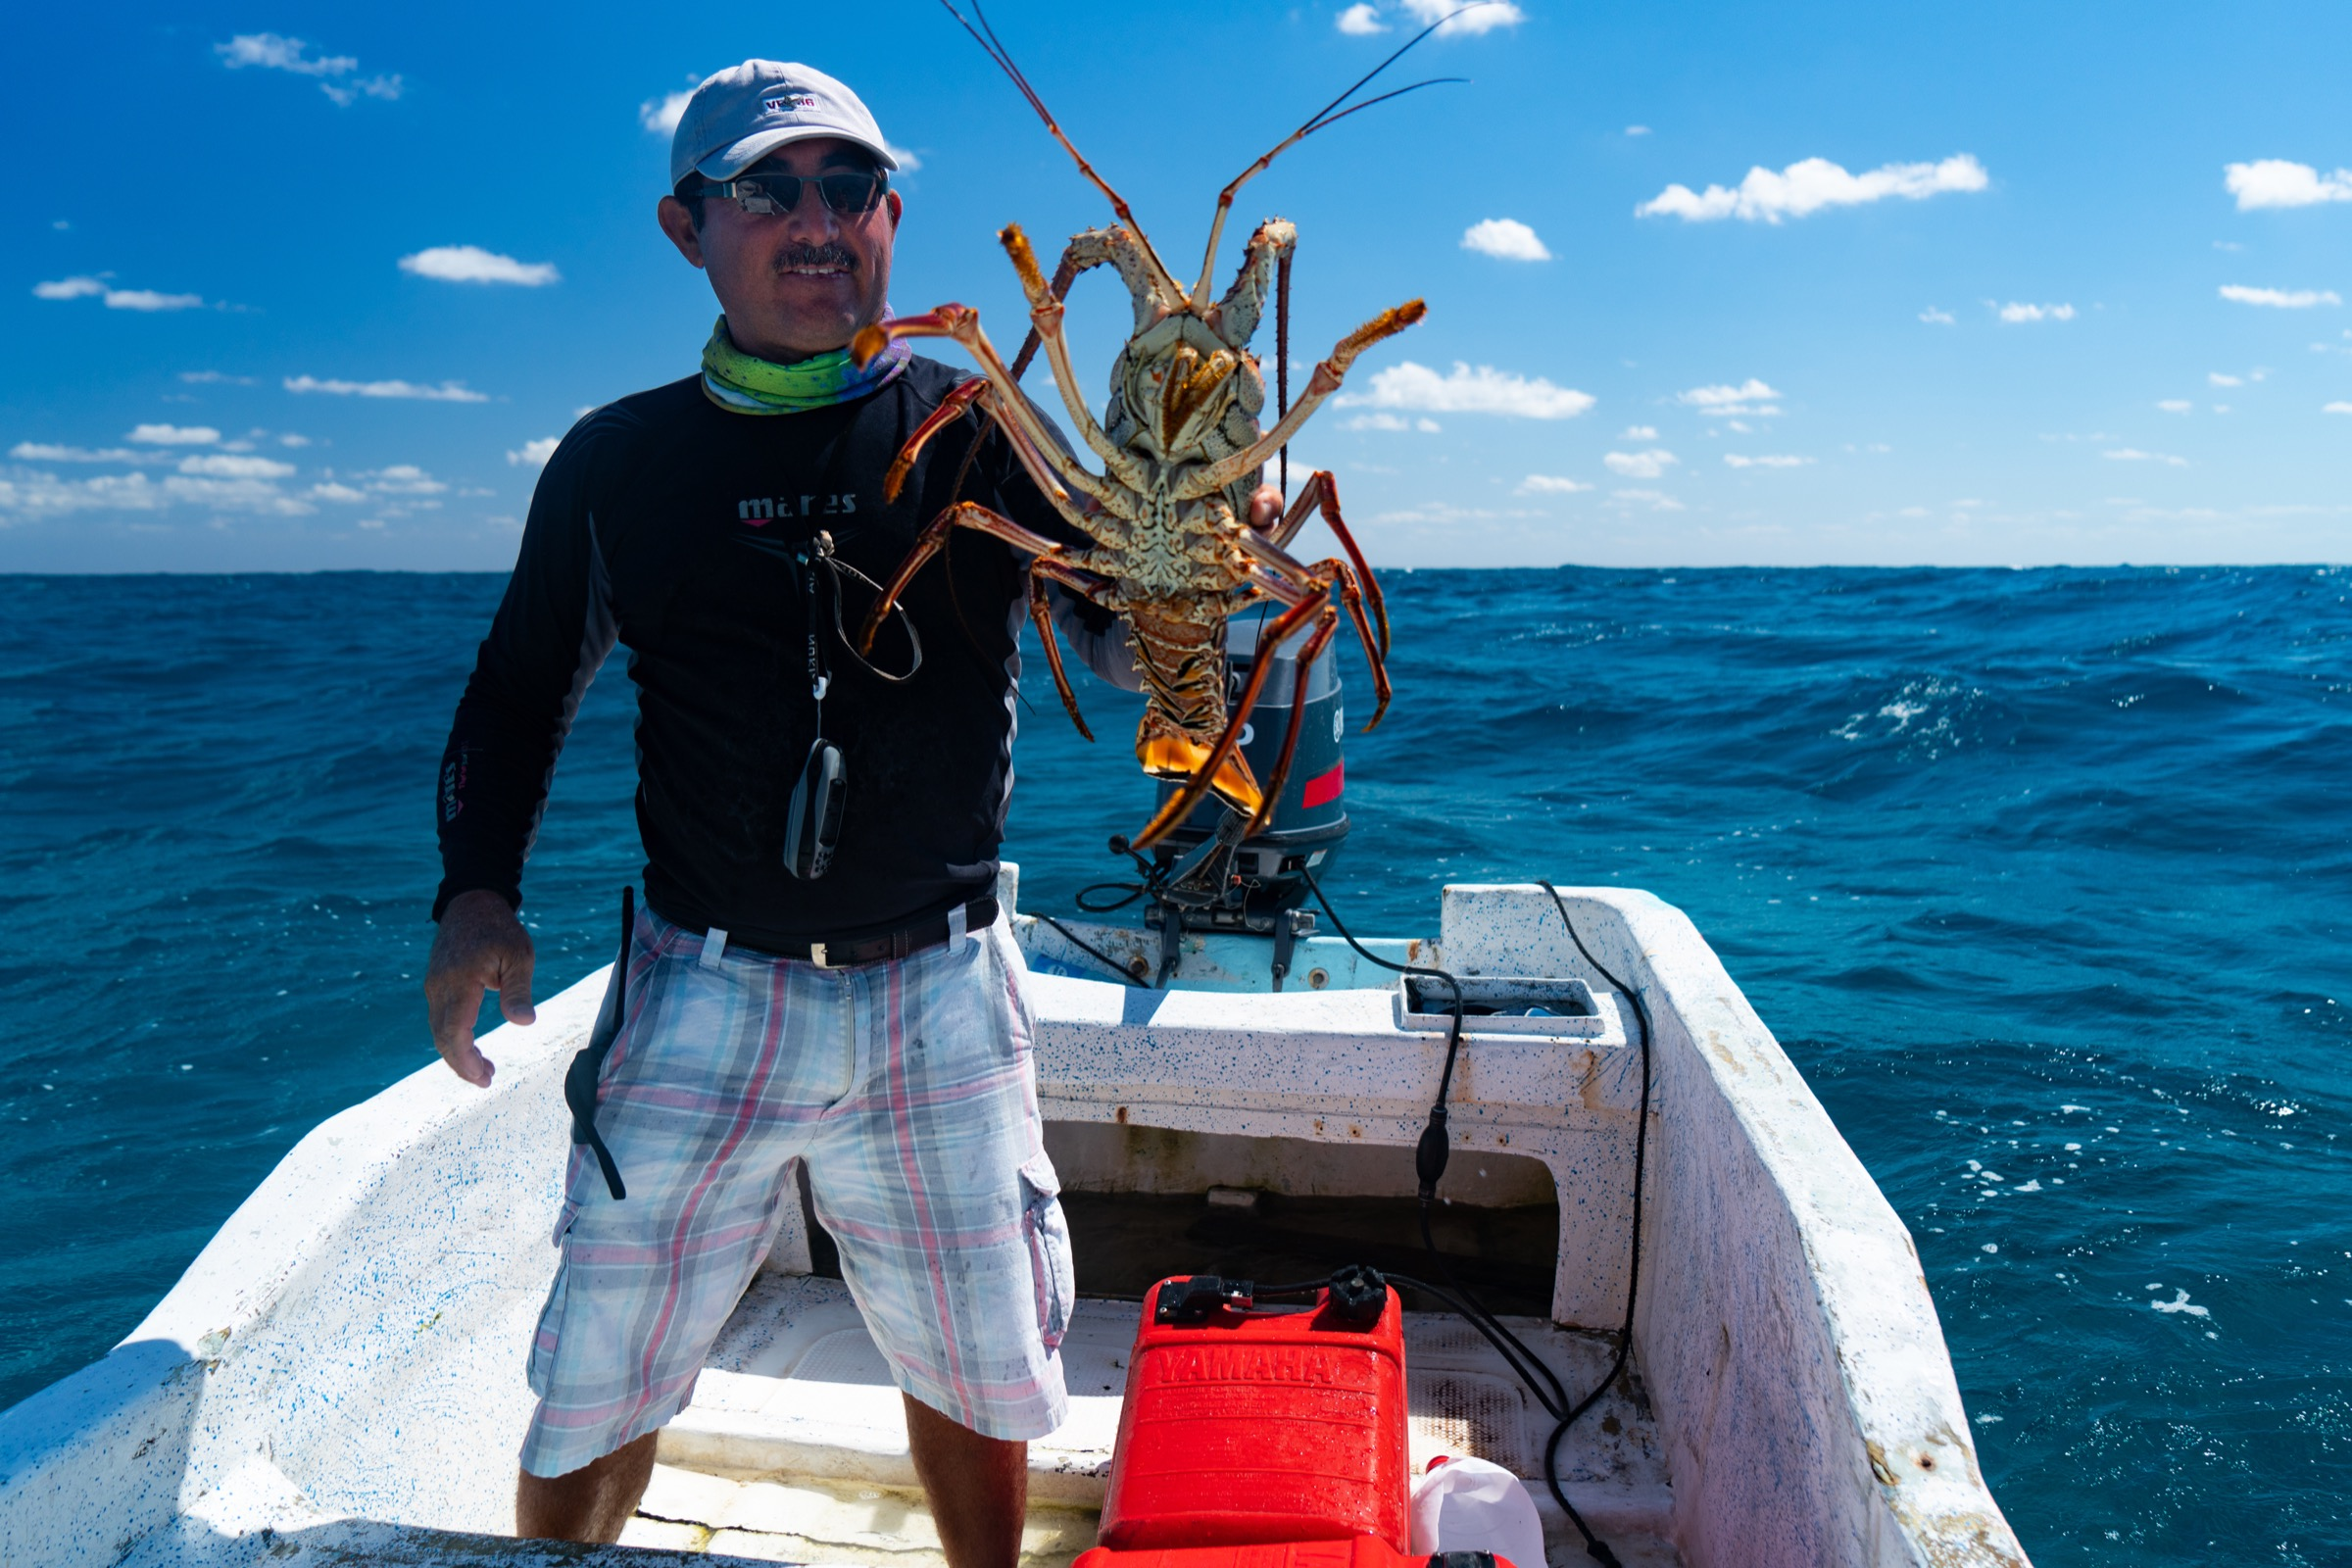 Emilio Pérez Mendoza shows off one of the Caribbean spiny lobsters his crew caught under a casita. Photograph by Steve De Neef